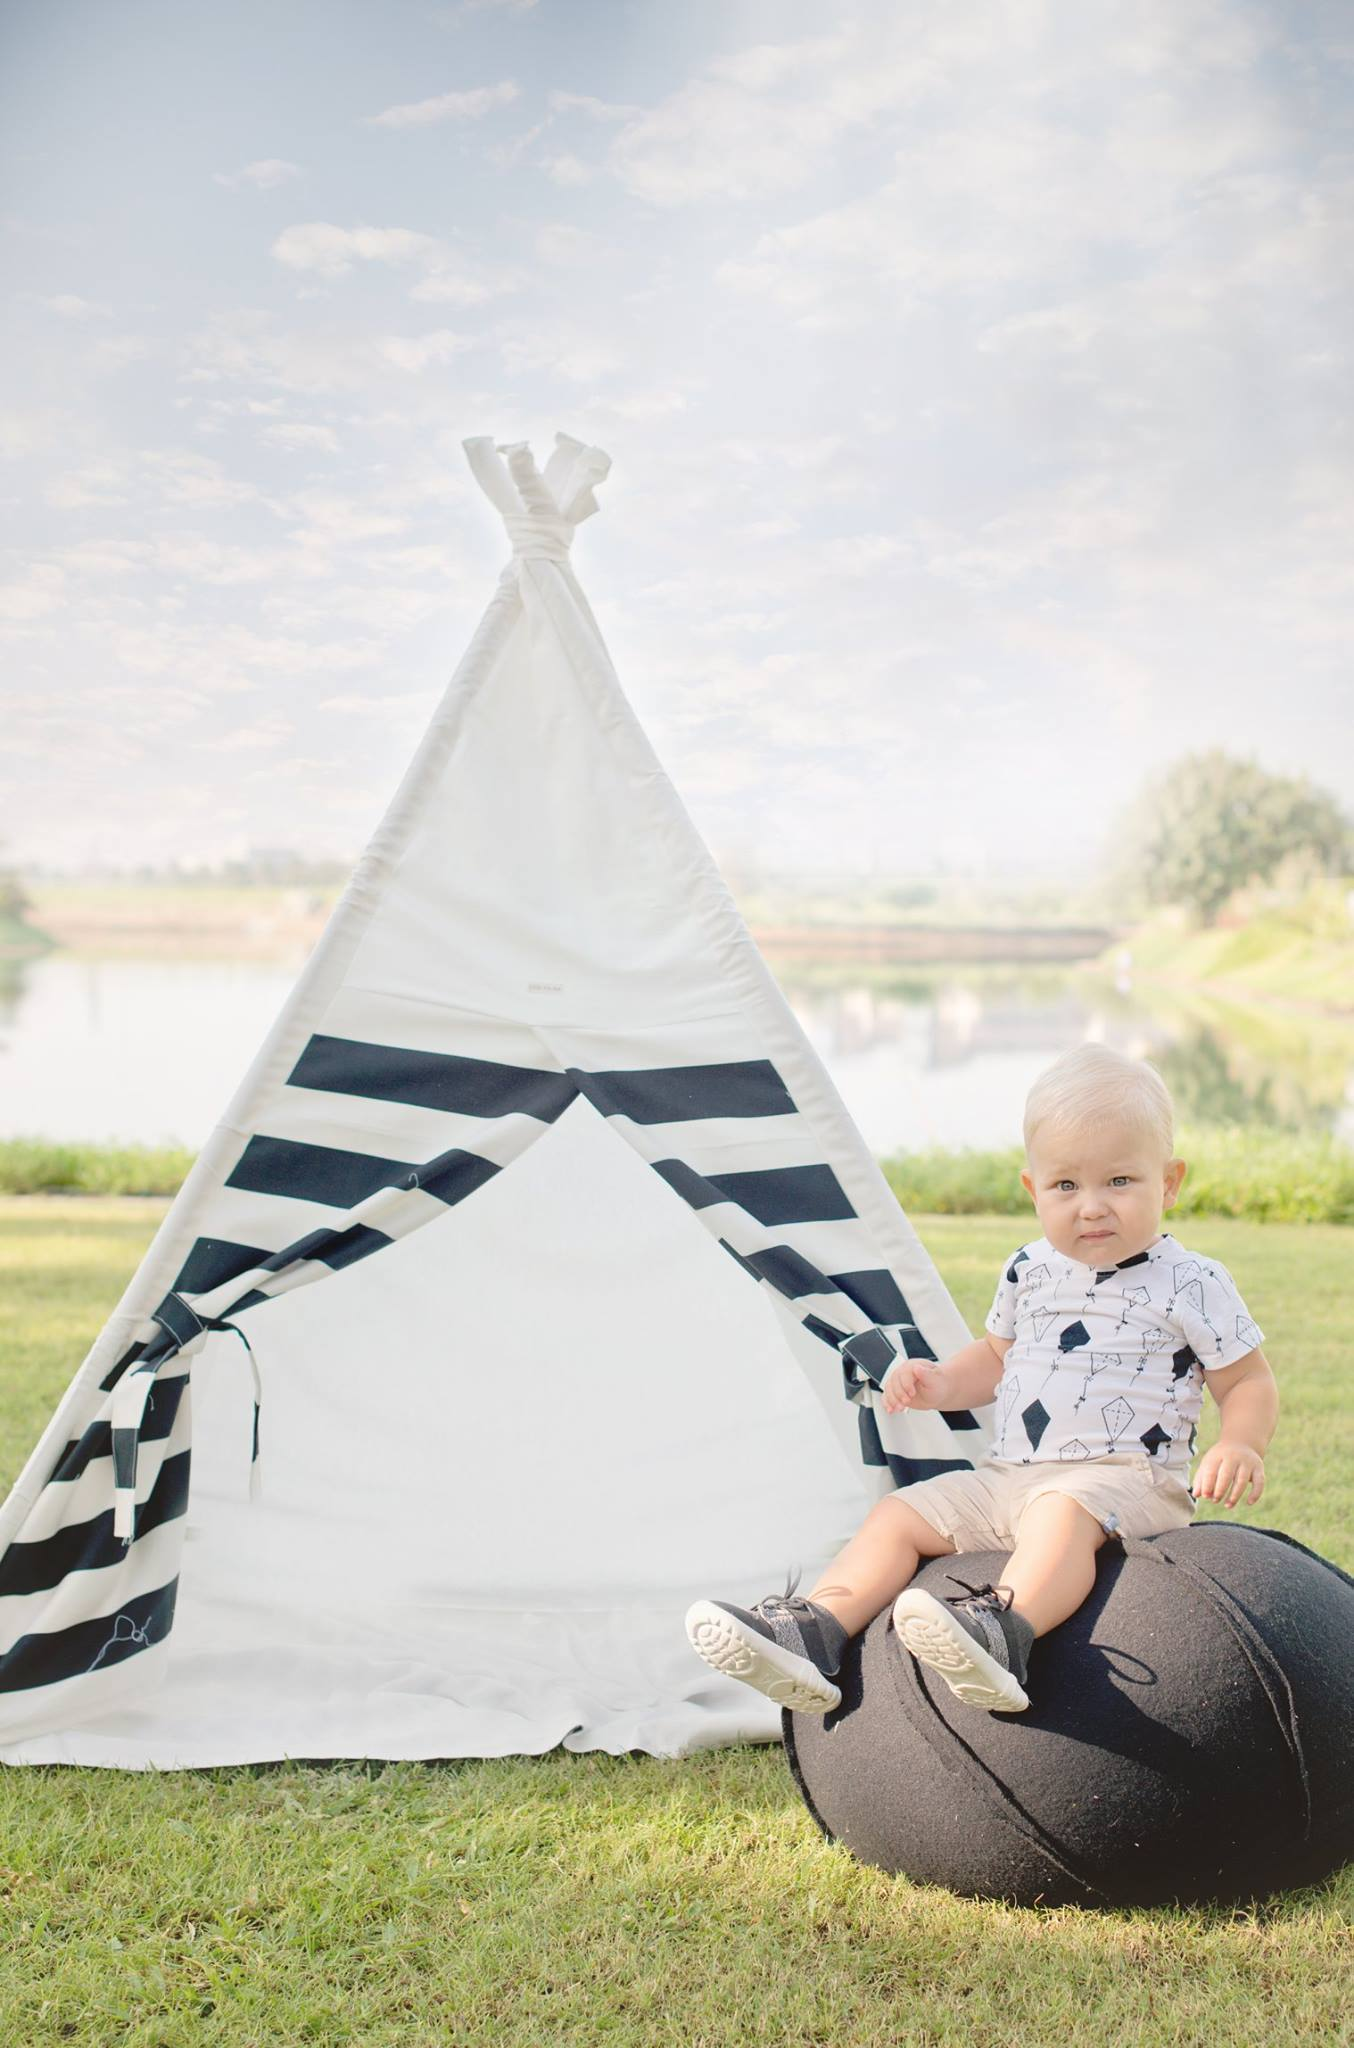 Monochrome teepee with stripes